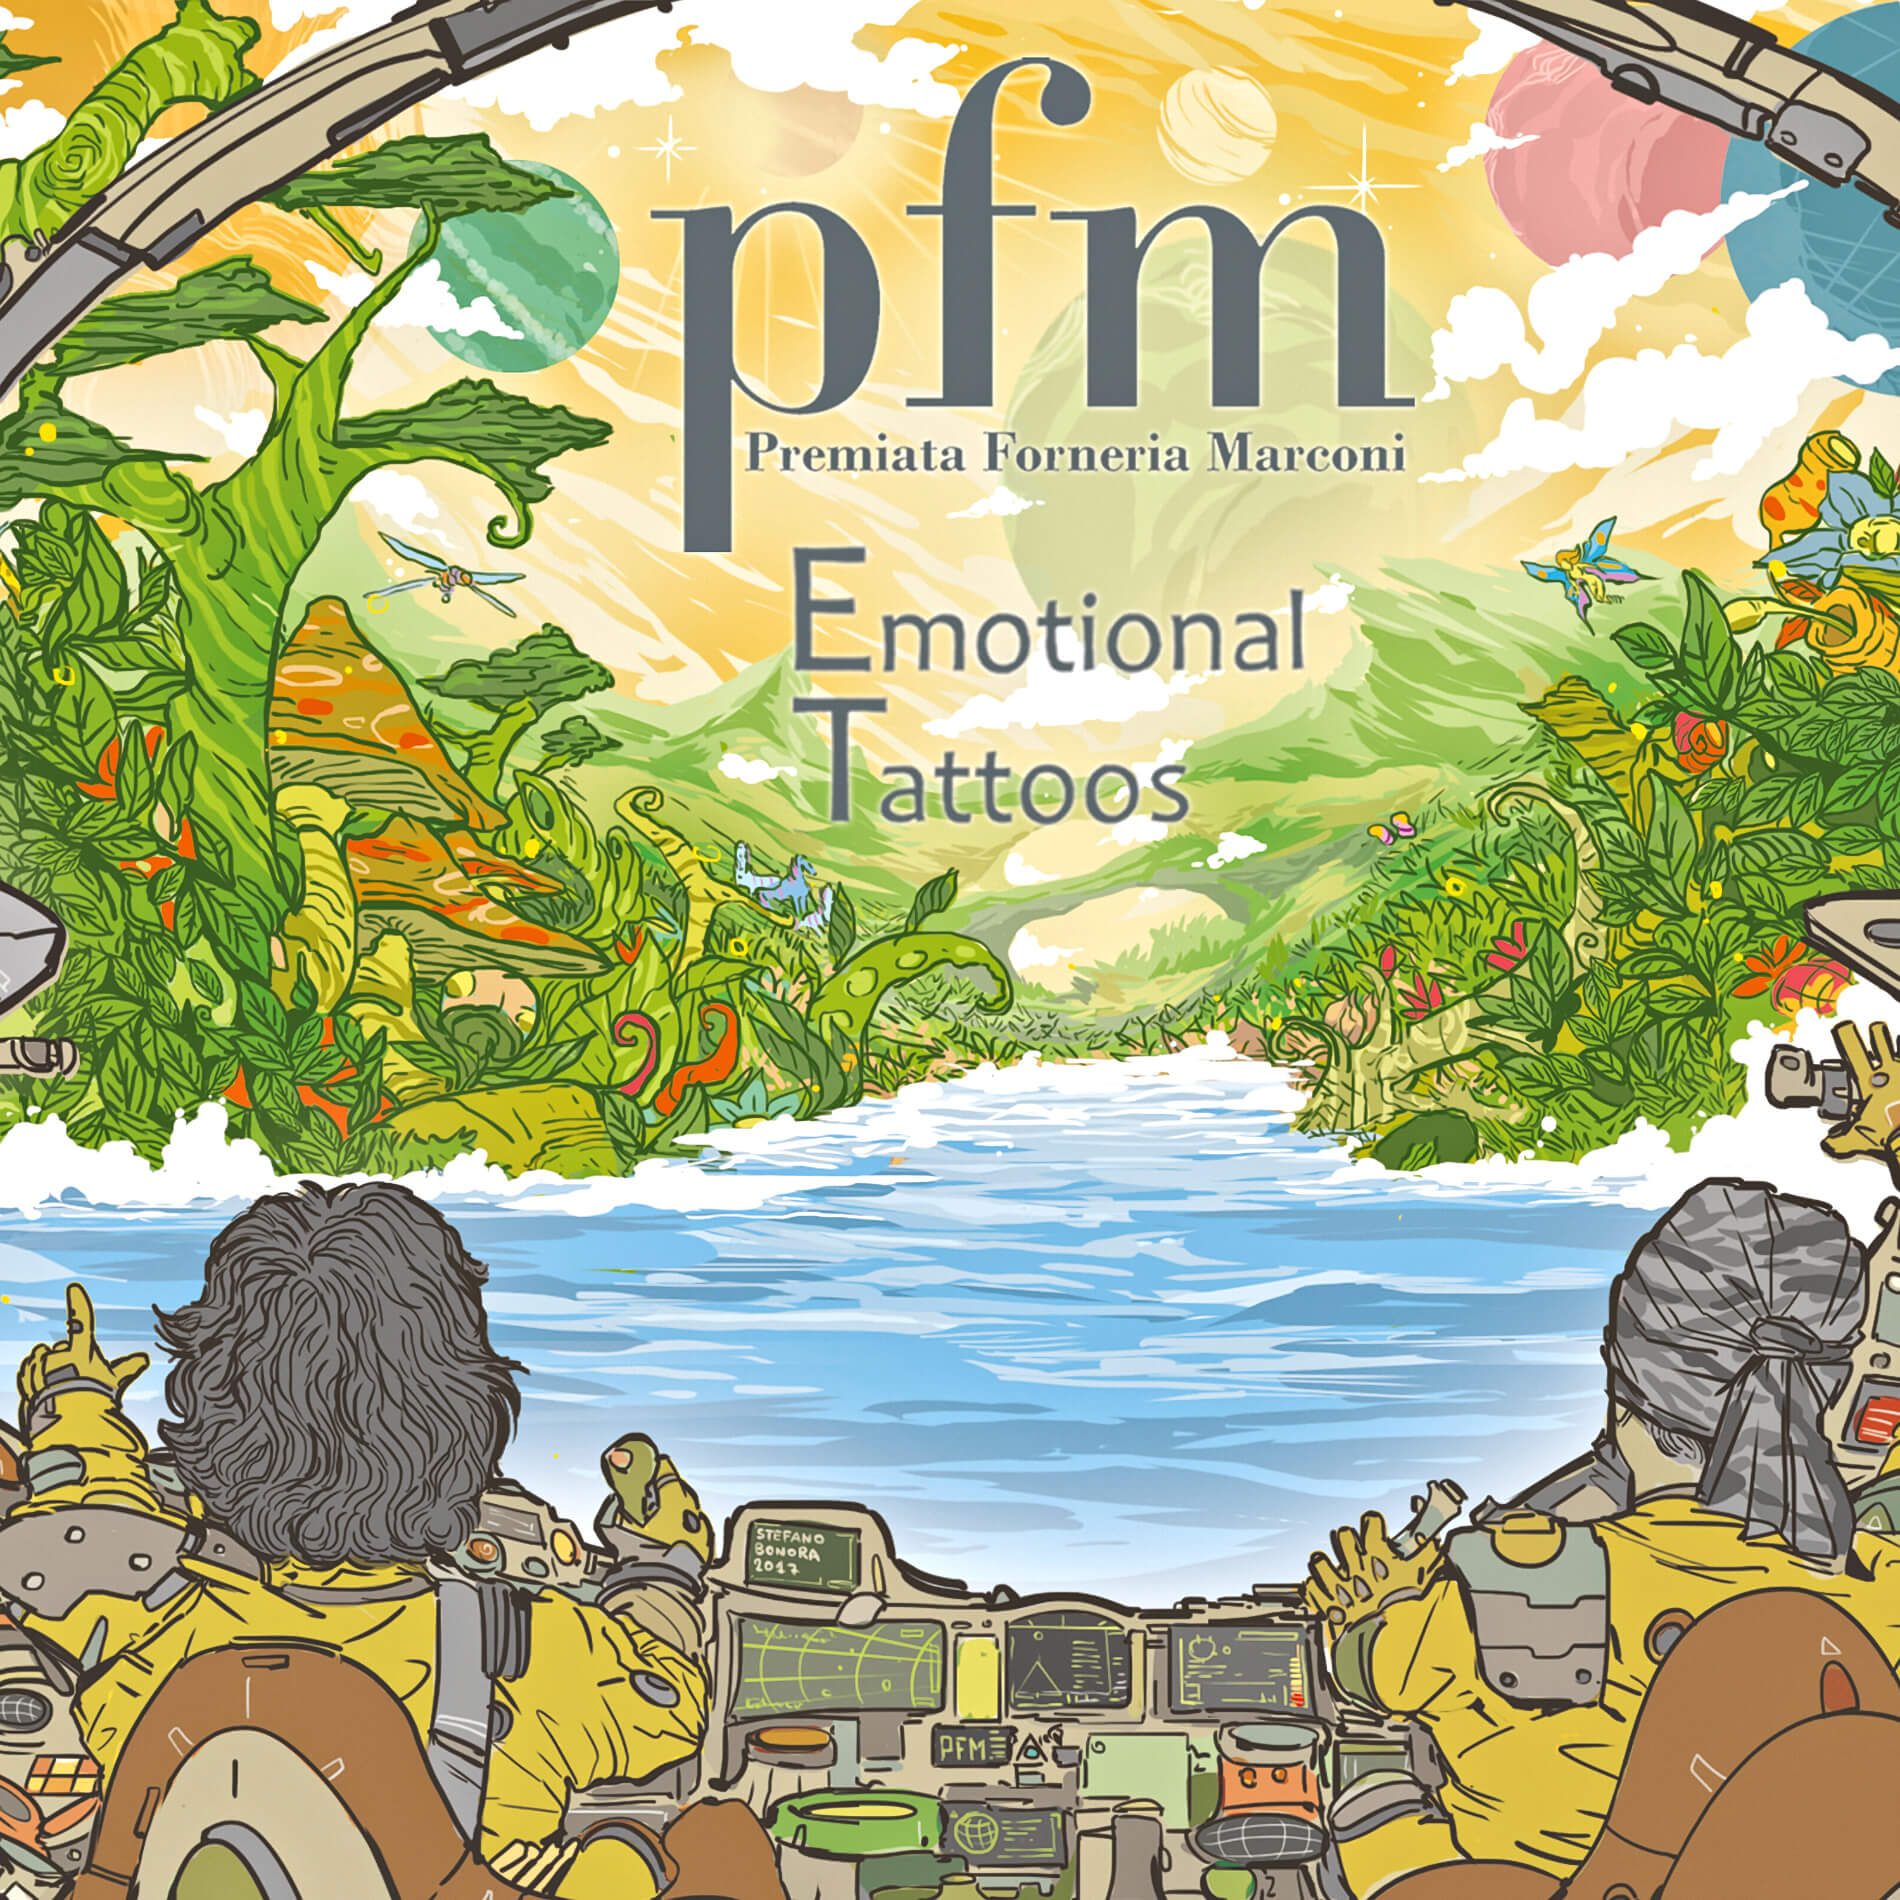 Premiata Forneria Marconi – Emotional Tattoos